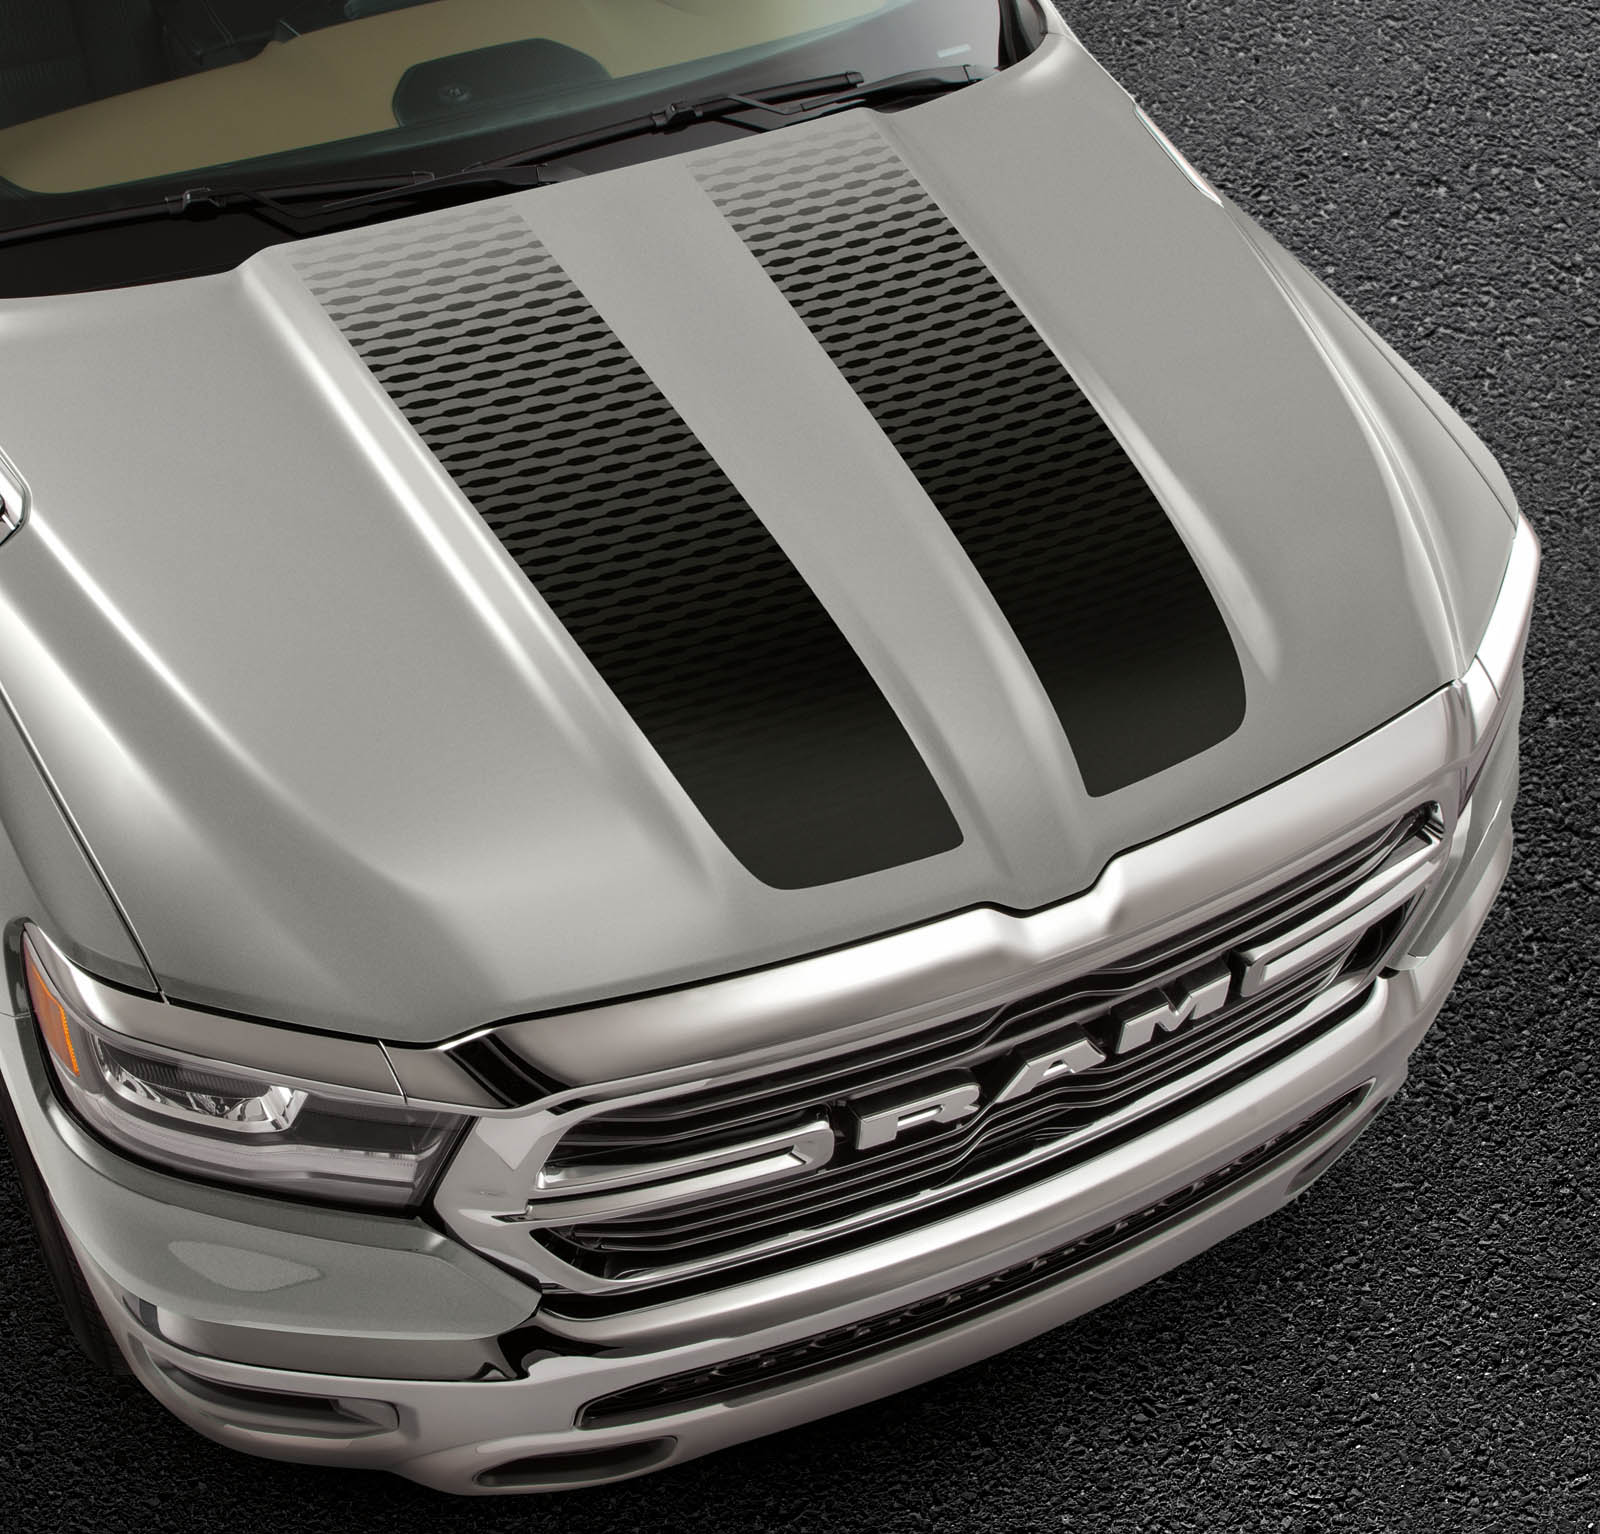 2019 Ram 12 Inch Touchscreen Vs The Competition Page 2